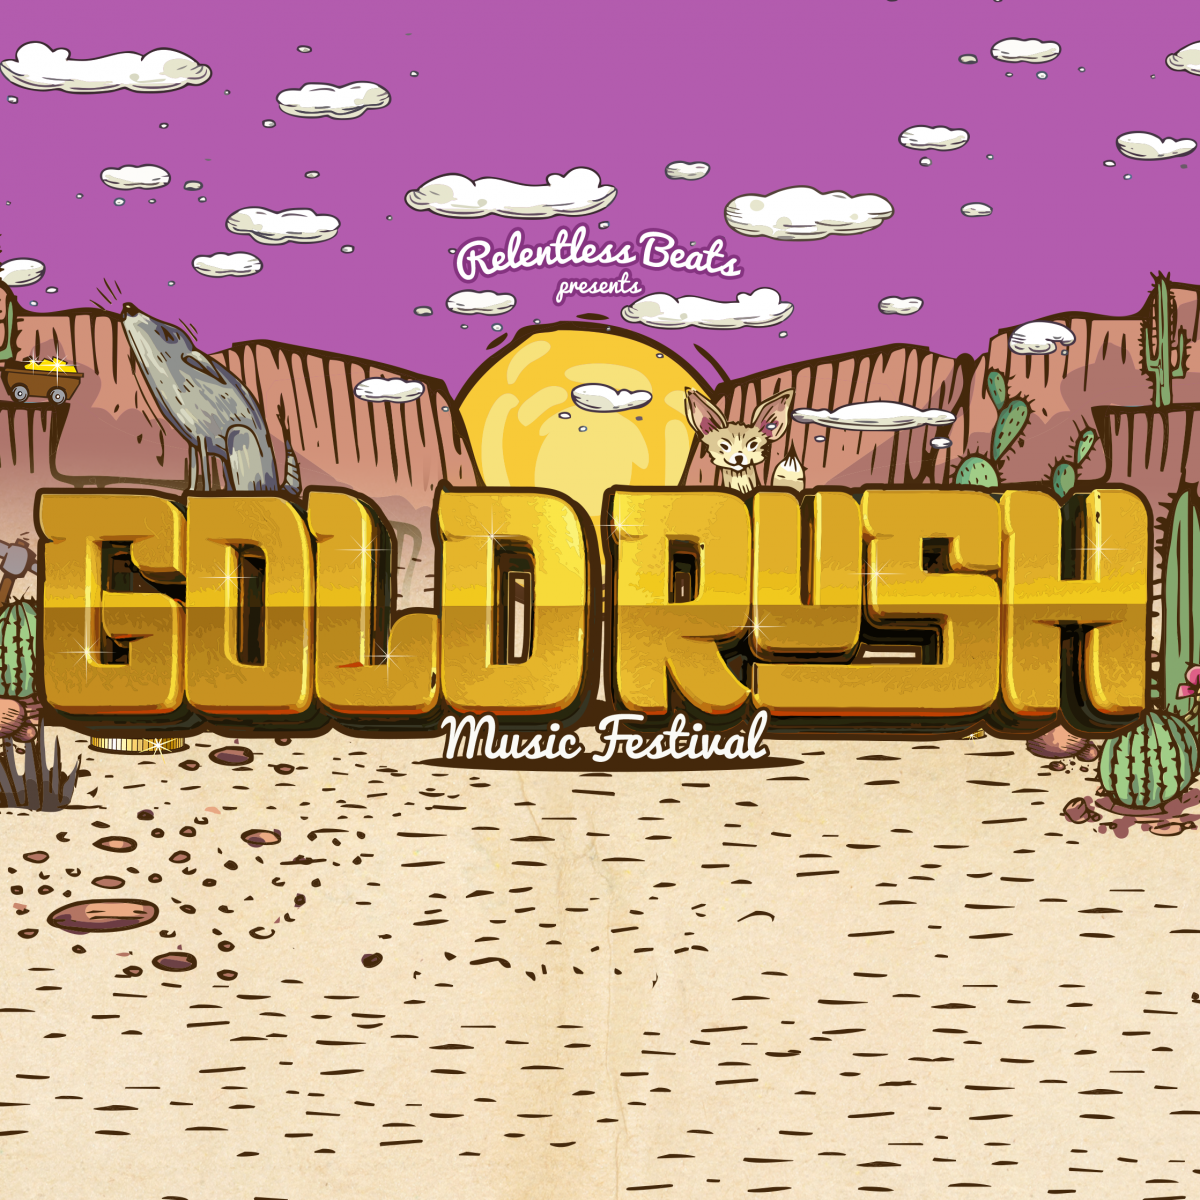 Flyer for Goldrush 2018